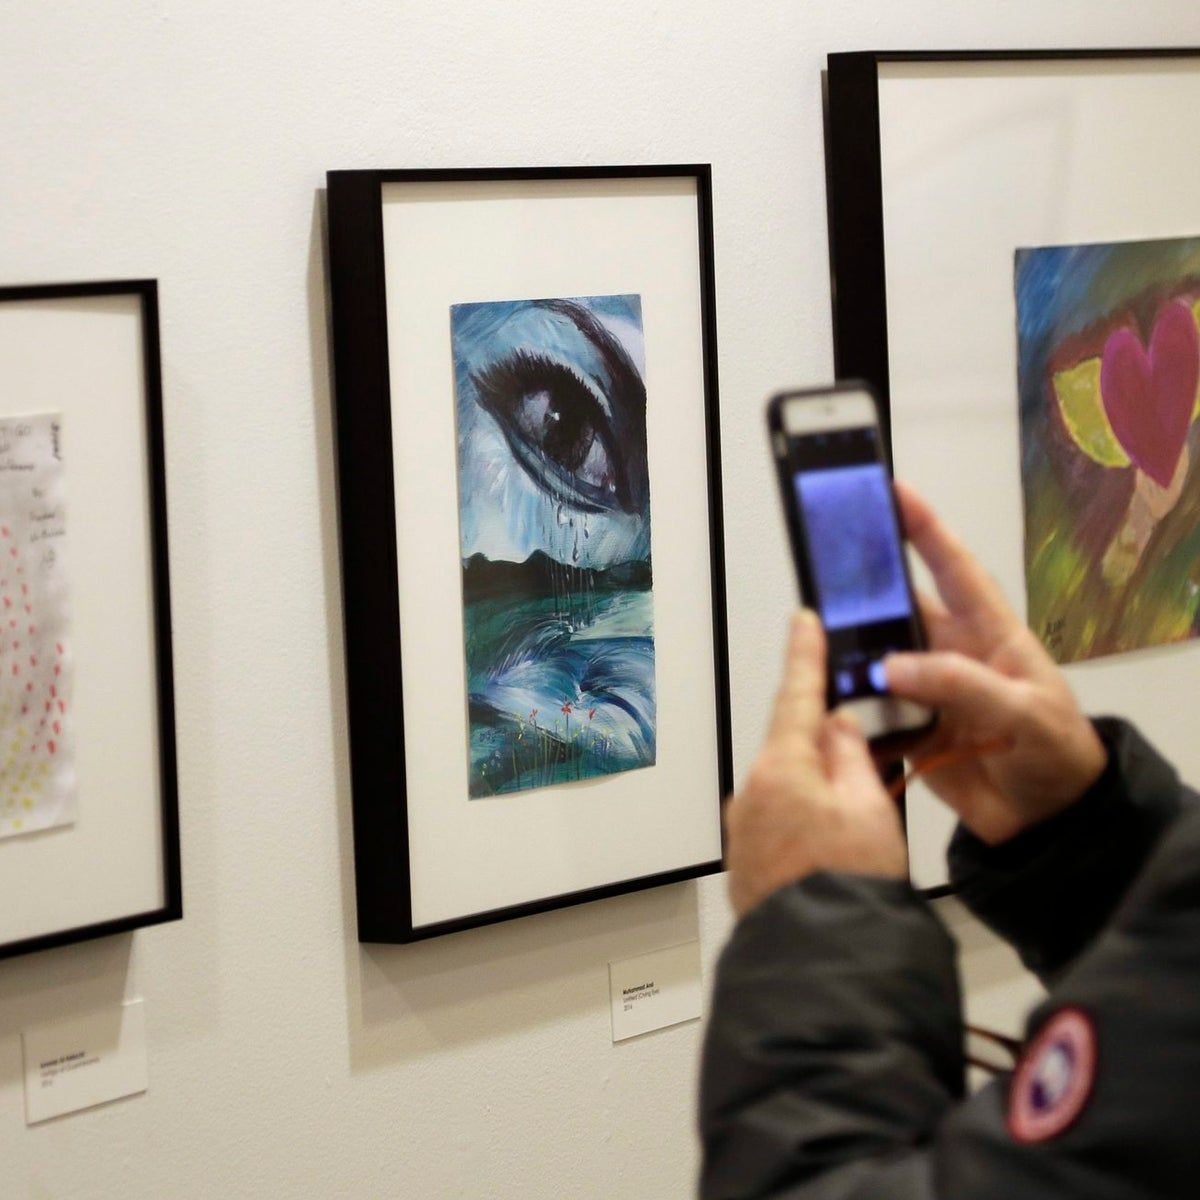 A man takes a picture of artwork made by detainees of the Guantanamo Bay Detention Camp at an exhibit at at the John Jay College of Criminal Justice in New York.